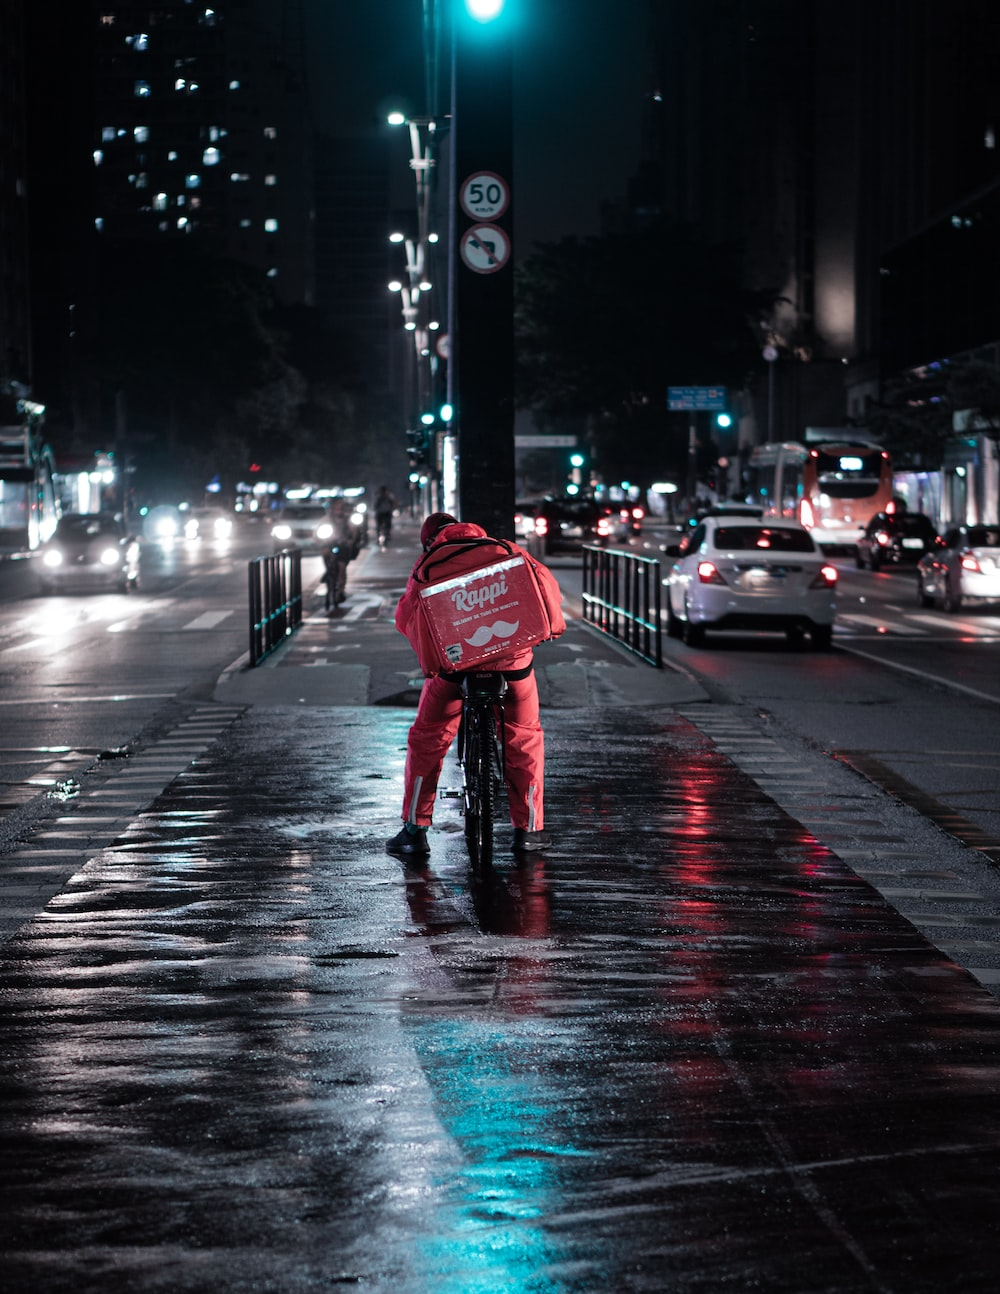 person in red jacket and blue denim jeans walking on street during night time